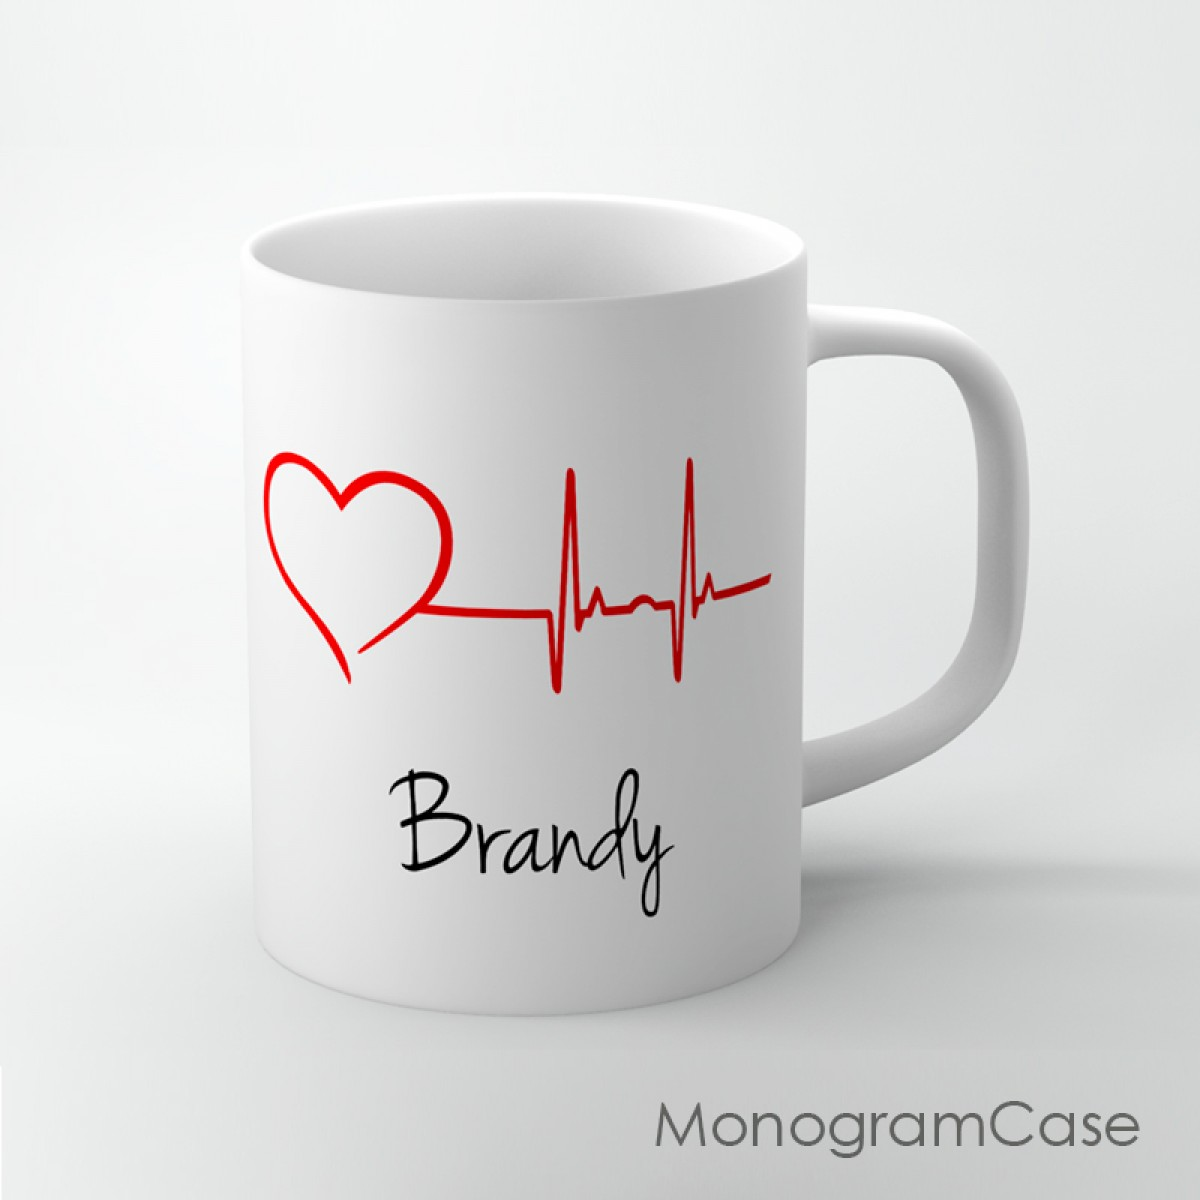 Garage Heart S Coffee Cup Broken Heart Heartbeat Line Red Heart Medical Coffee Cup Heartbeat Line Red Heart Medical Coffee Cup Monogramcase Coffee Cup furniture Coffee Cup Heart